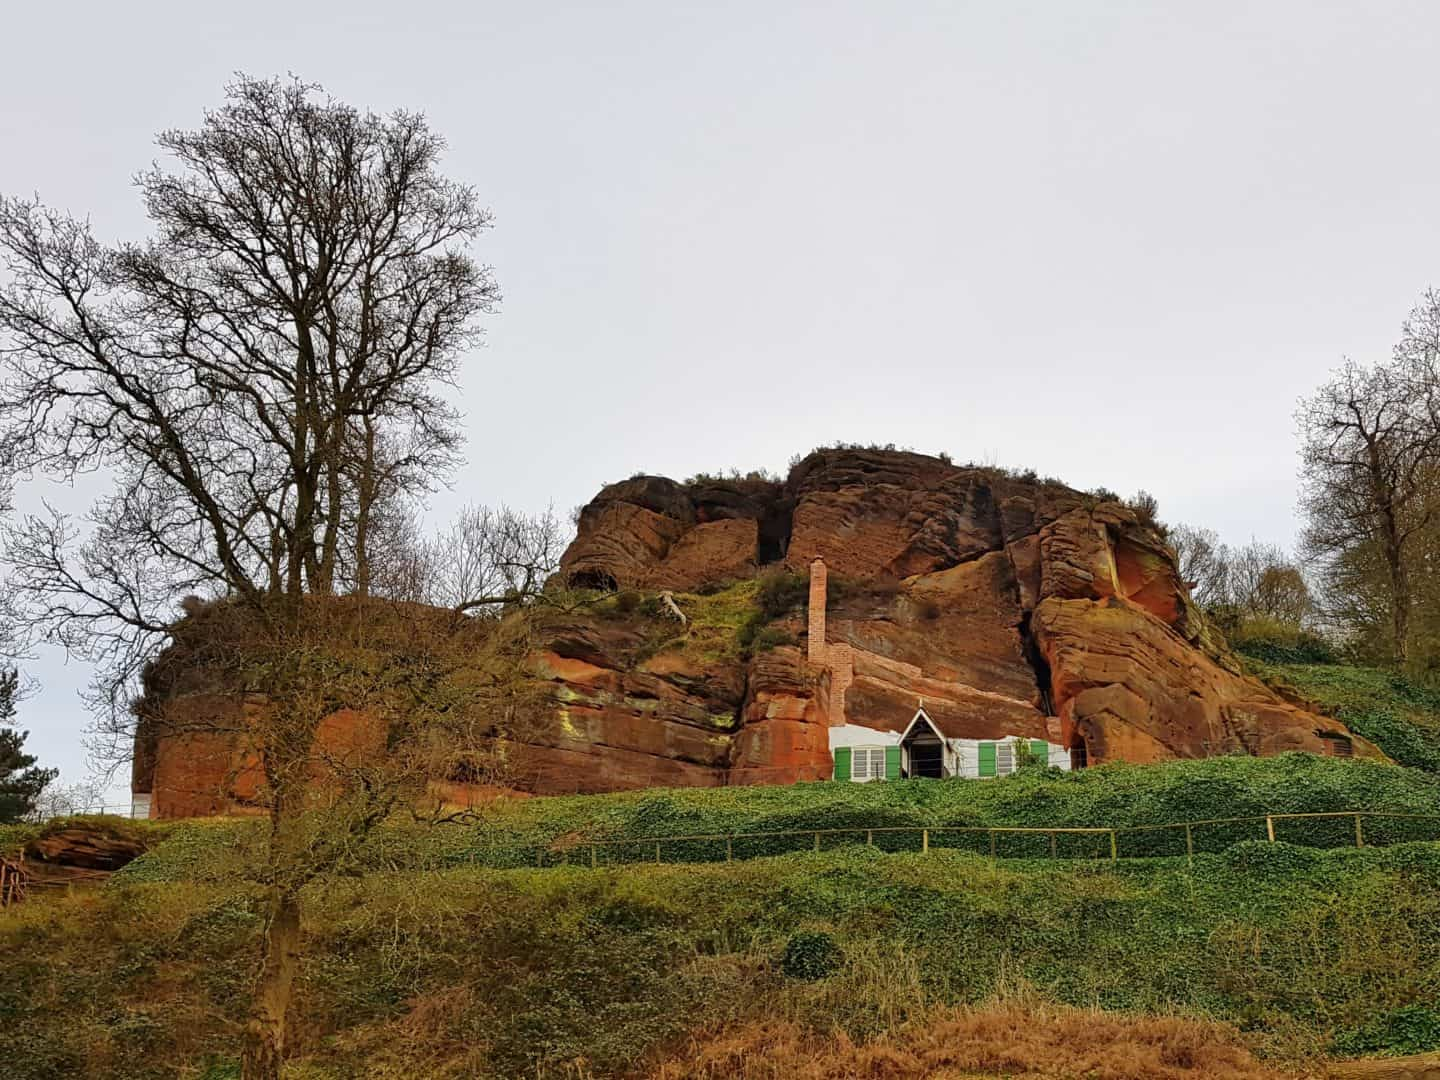 Dog friendly family day out at Kinver Edge and the Rock Houses